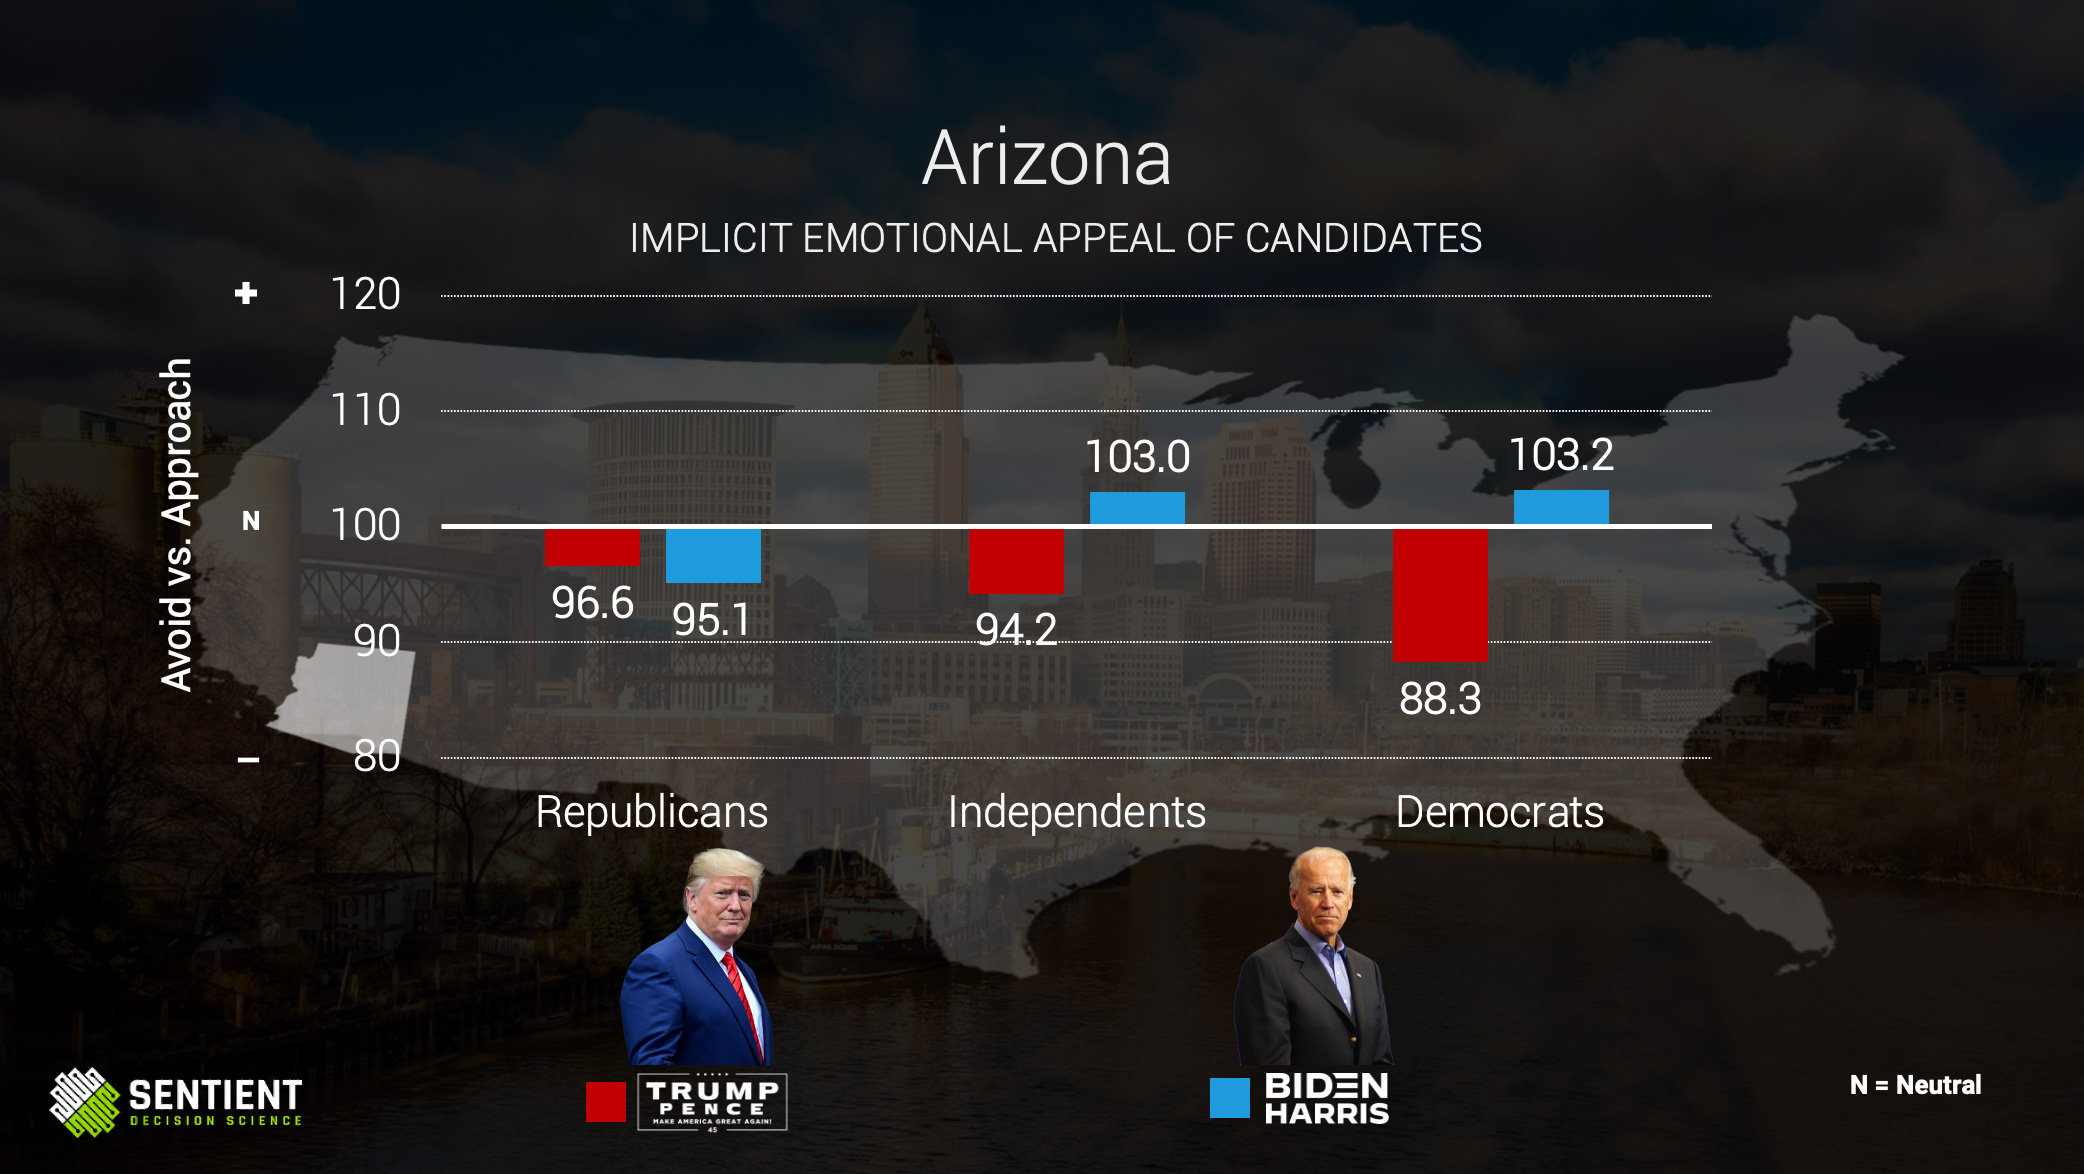 Arizona Implicit Emotional Appeal of Candidates